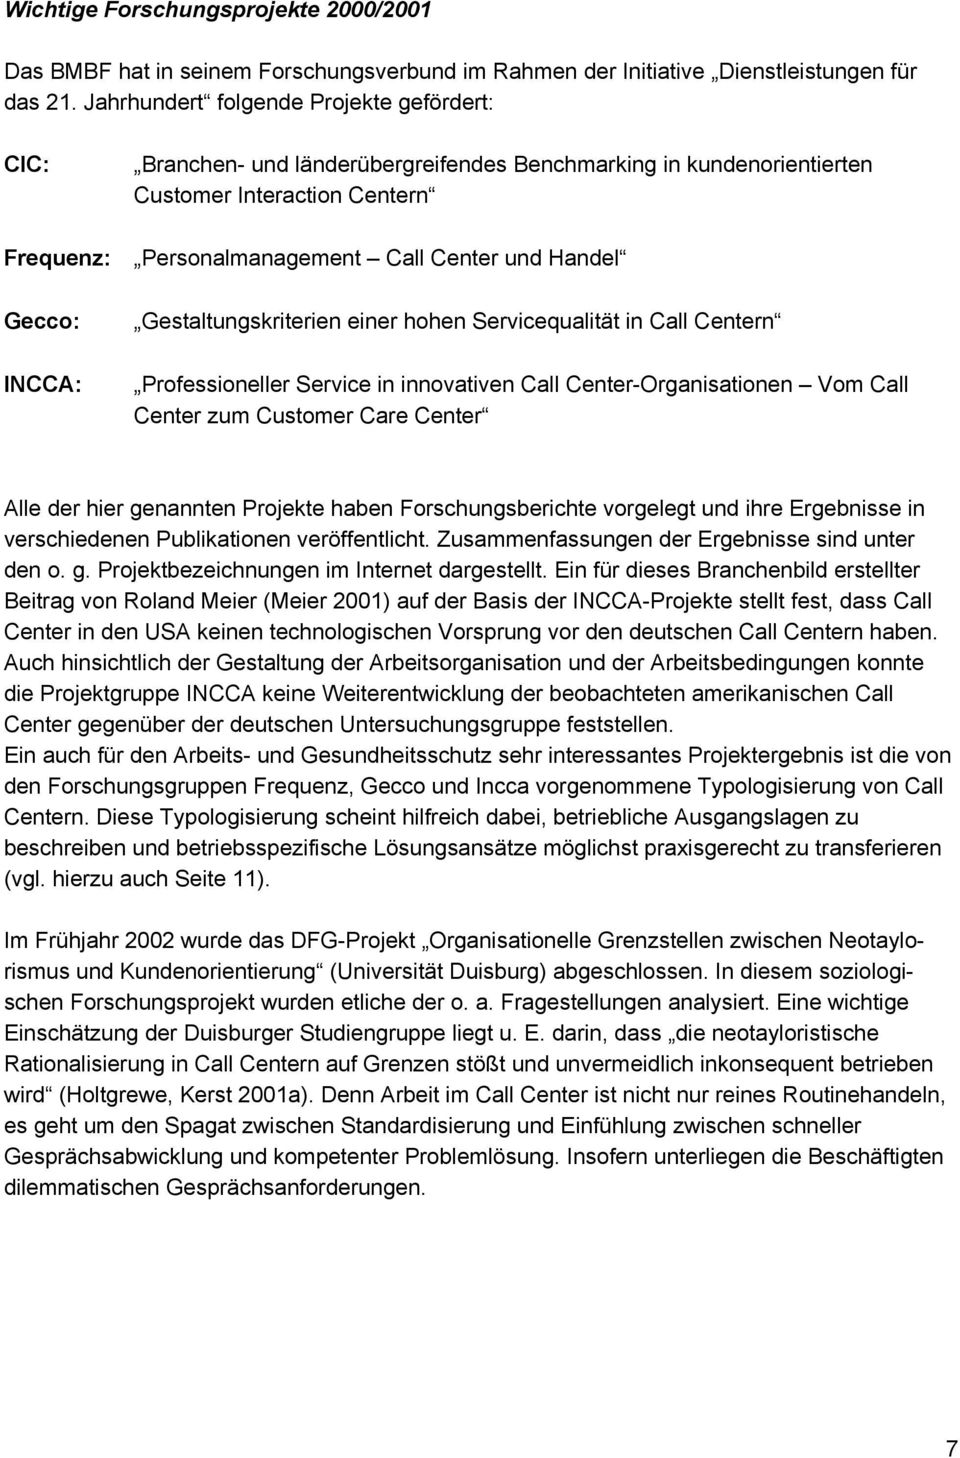 Gecco: INCCA: Gestaltungskriterien einer hohen Servicequalität in Call Centern Professioneller Service in innovativen Call Center-Organisationen Vom Call Center zum Customer Care Center Alle der hier